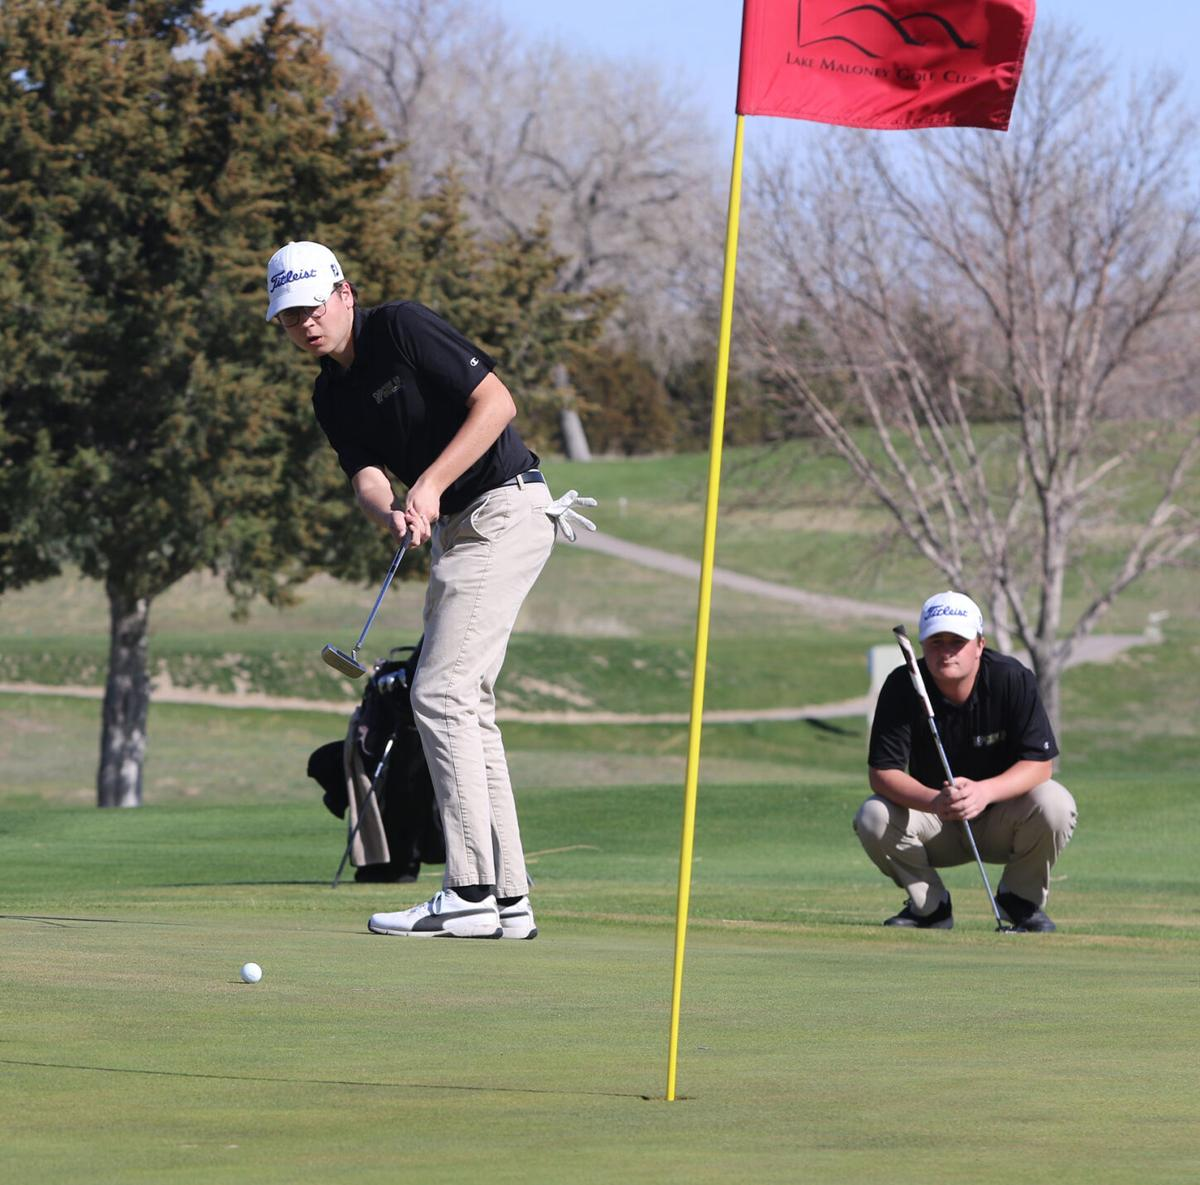 McCook bests North Platte by seven shots at Lake Maloney Golf Club